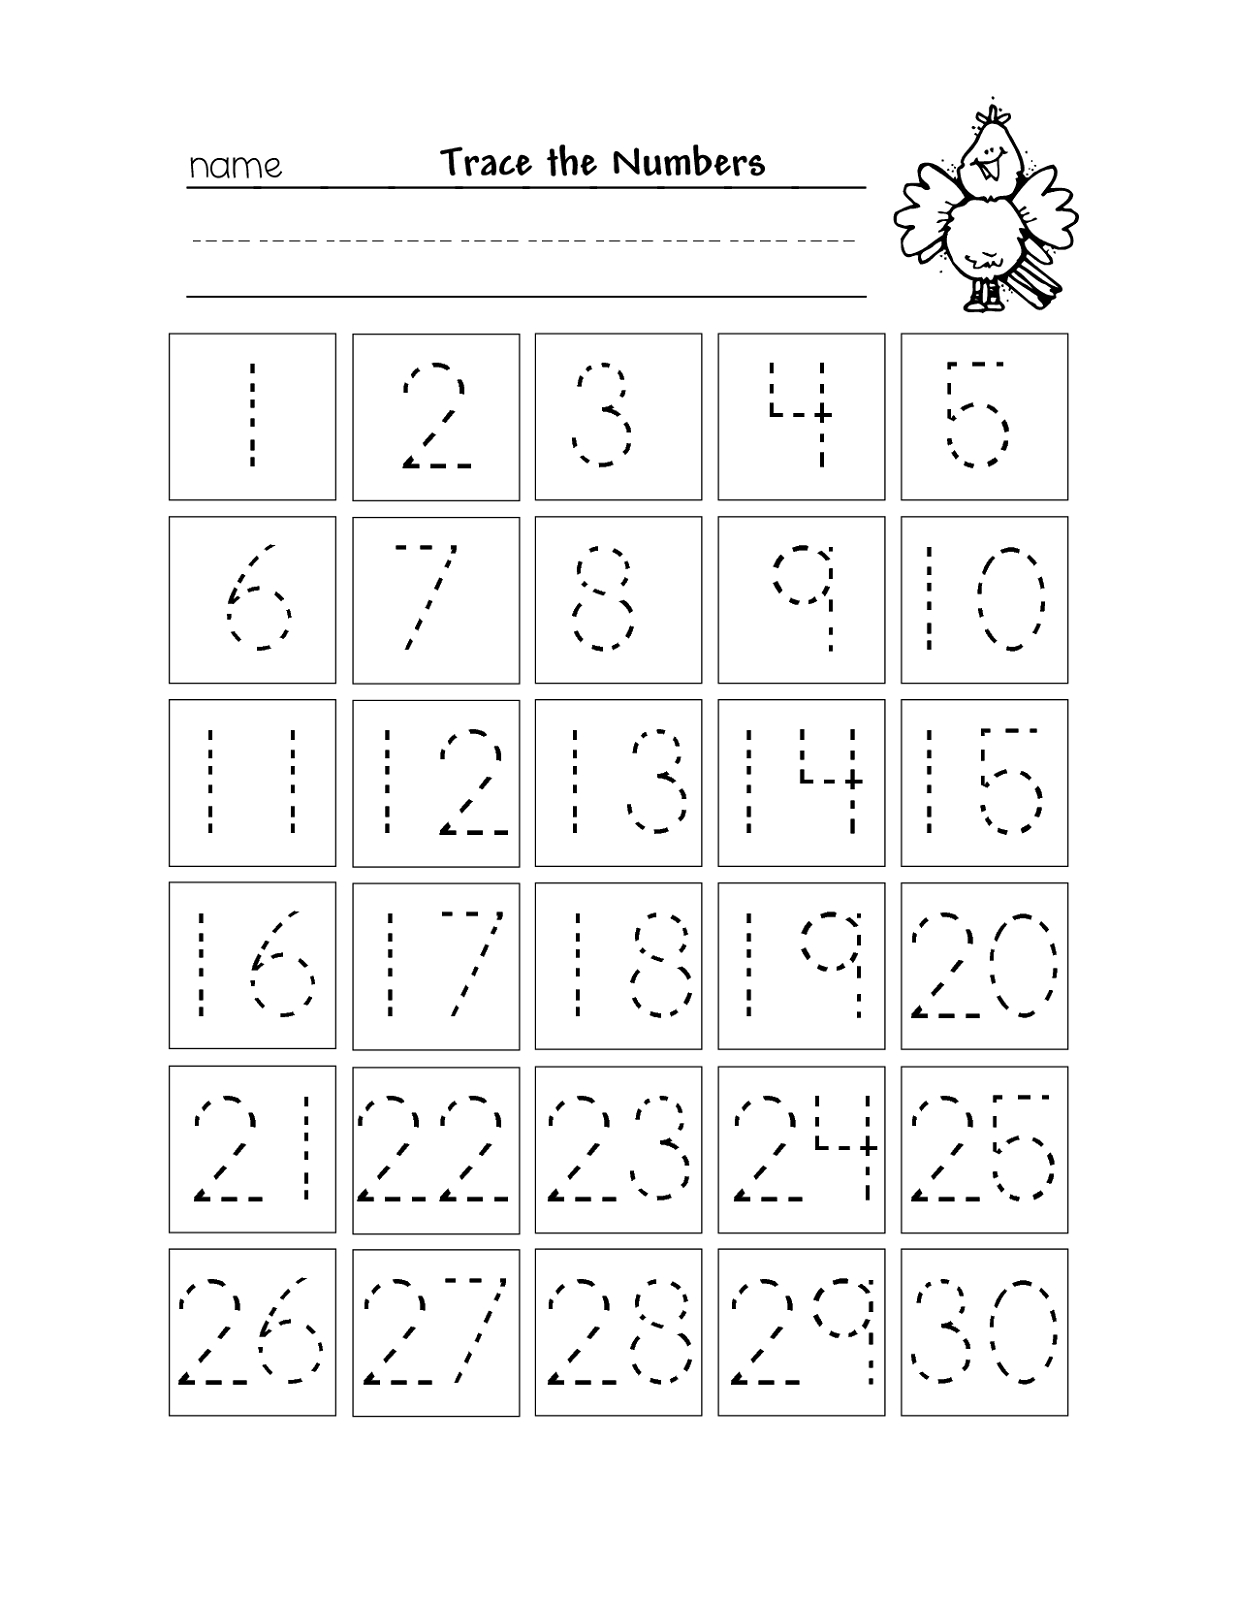 Free Printable Number Chart 1-30 | Kinder | Number Tracing - Free Printable Number Worksheets